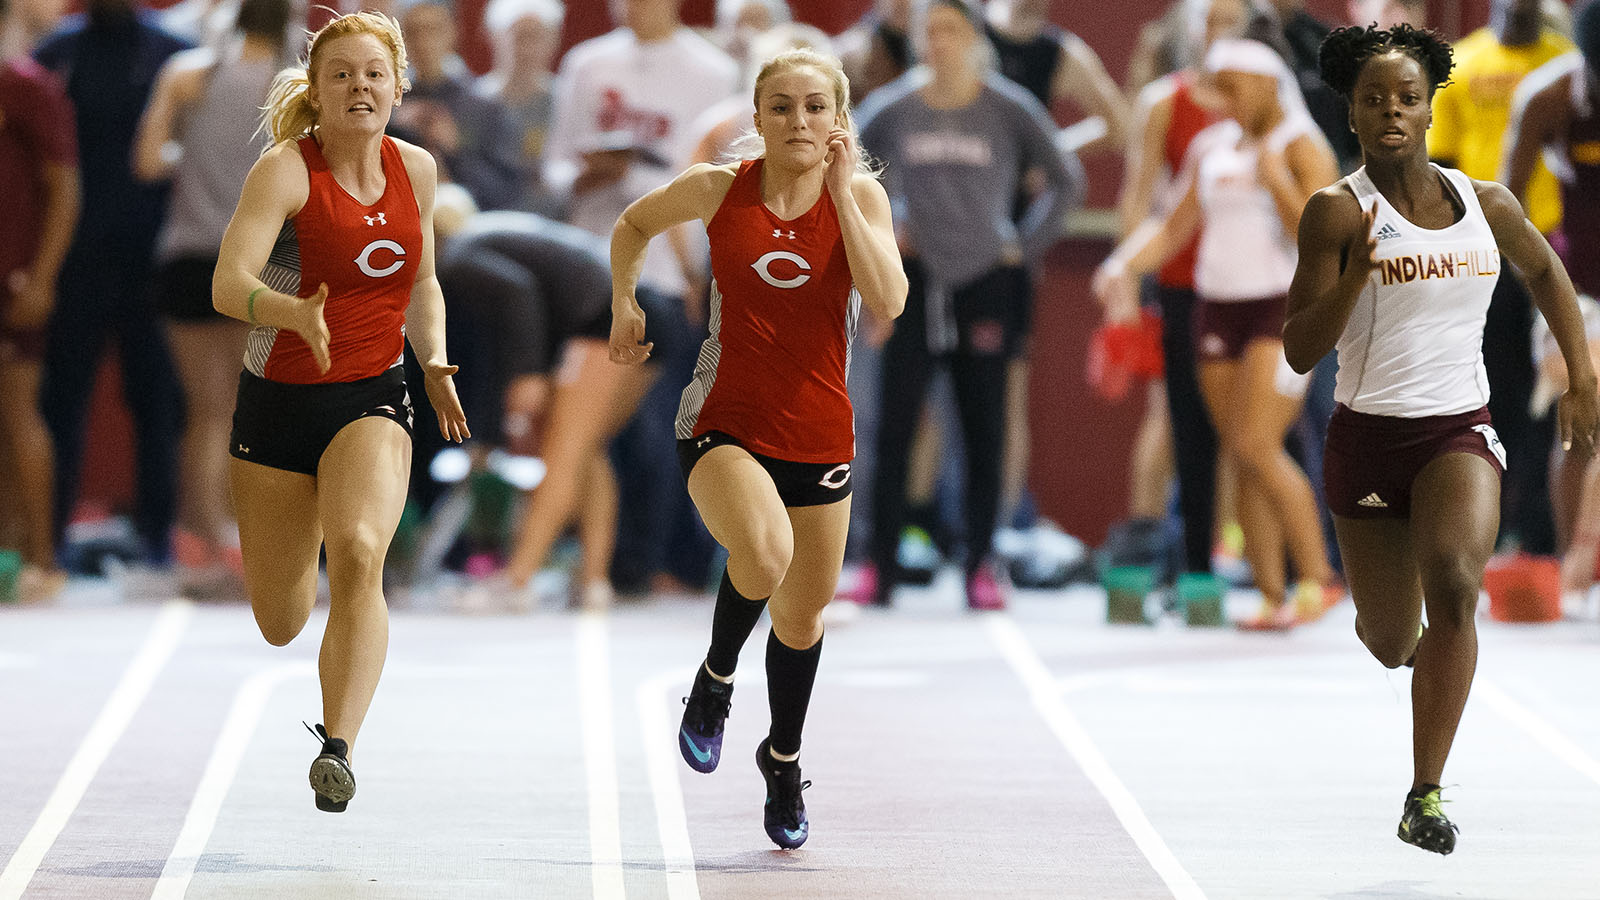 Gallery: DAC girls track and field championships   Prep